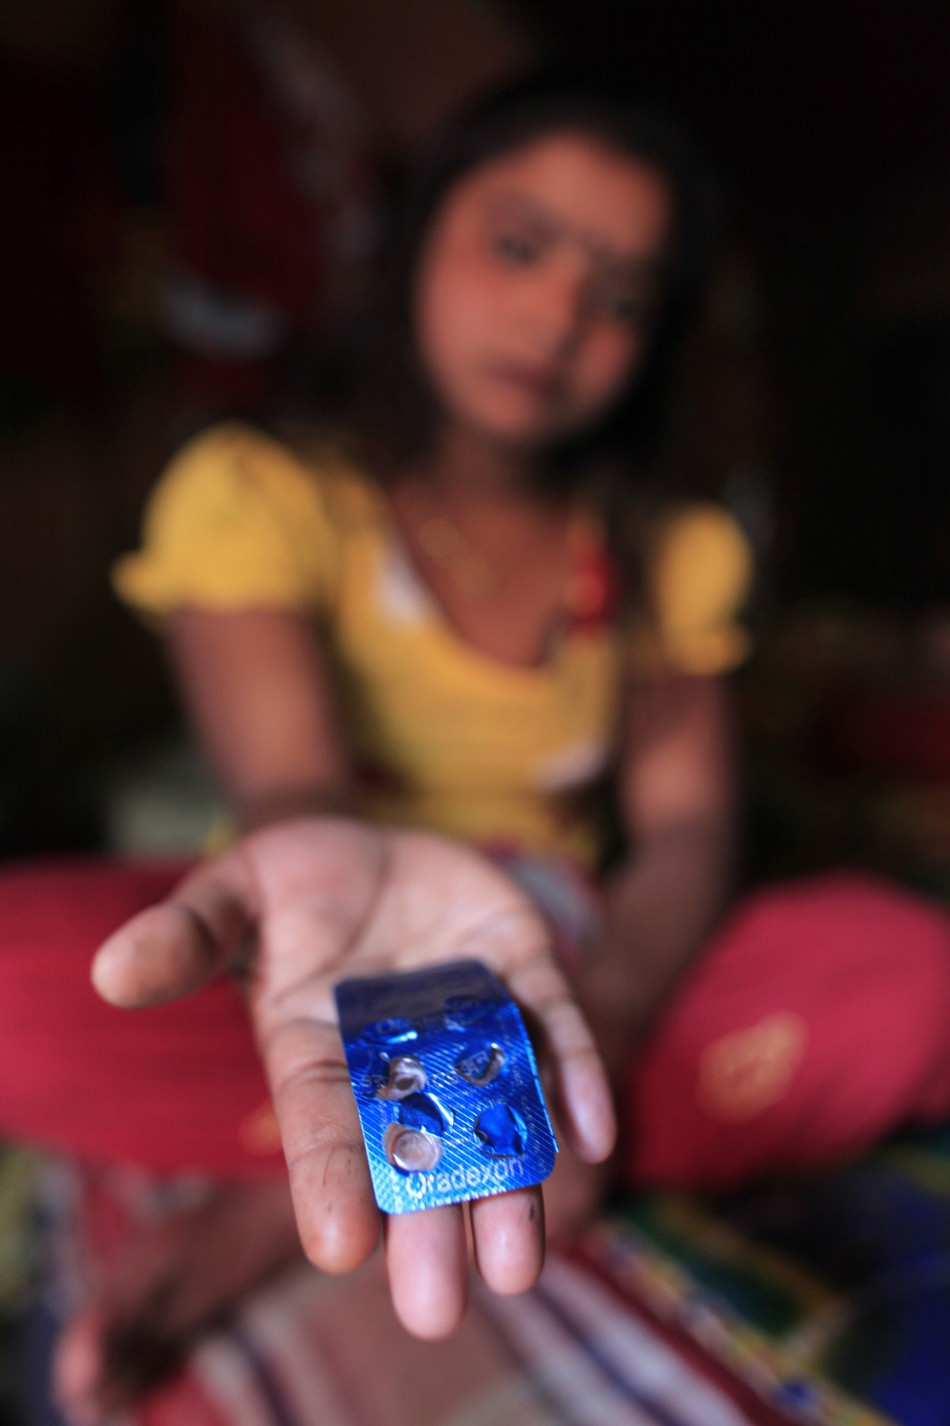 Seventeen-year-old prostitute Hashi shows Oradexon, a steroid, at Kandapara brothel in Tangail, a northeastern city of Bangladesh